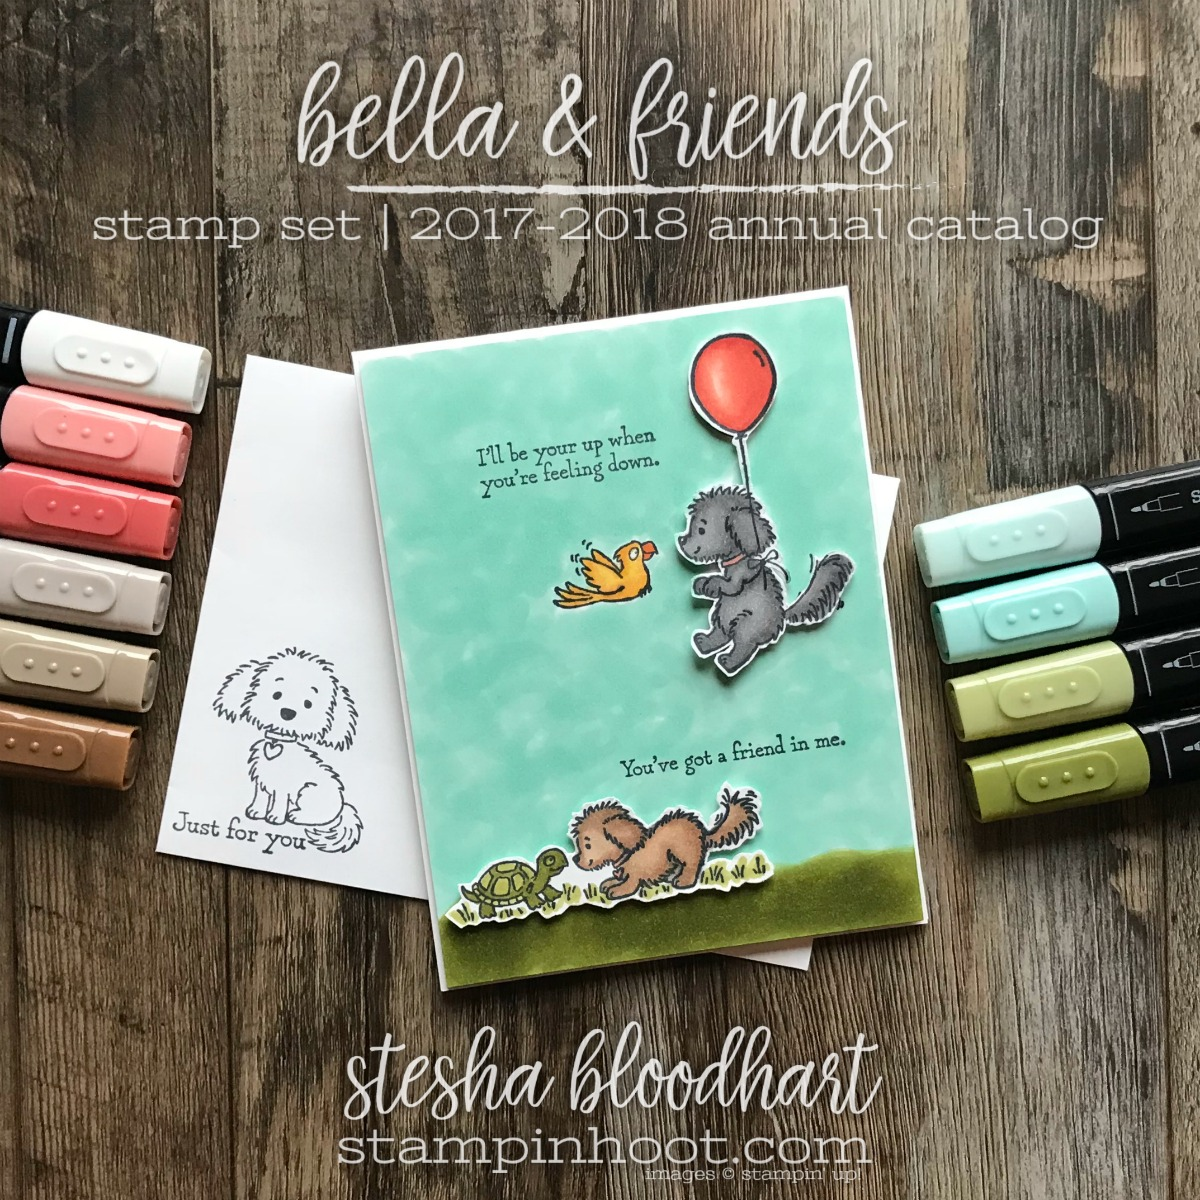 Bella & Friends Stamp Set by Stampin' Up! for the Stamp Review Crew Blog Hop, card created by Stesha Bloodhart, Stampin' Hoot! #steshabloodhart #stampinhoot